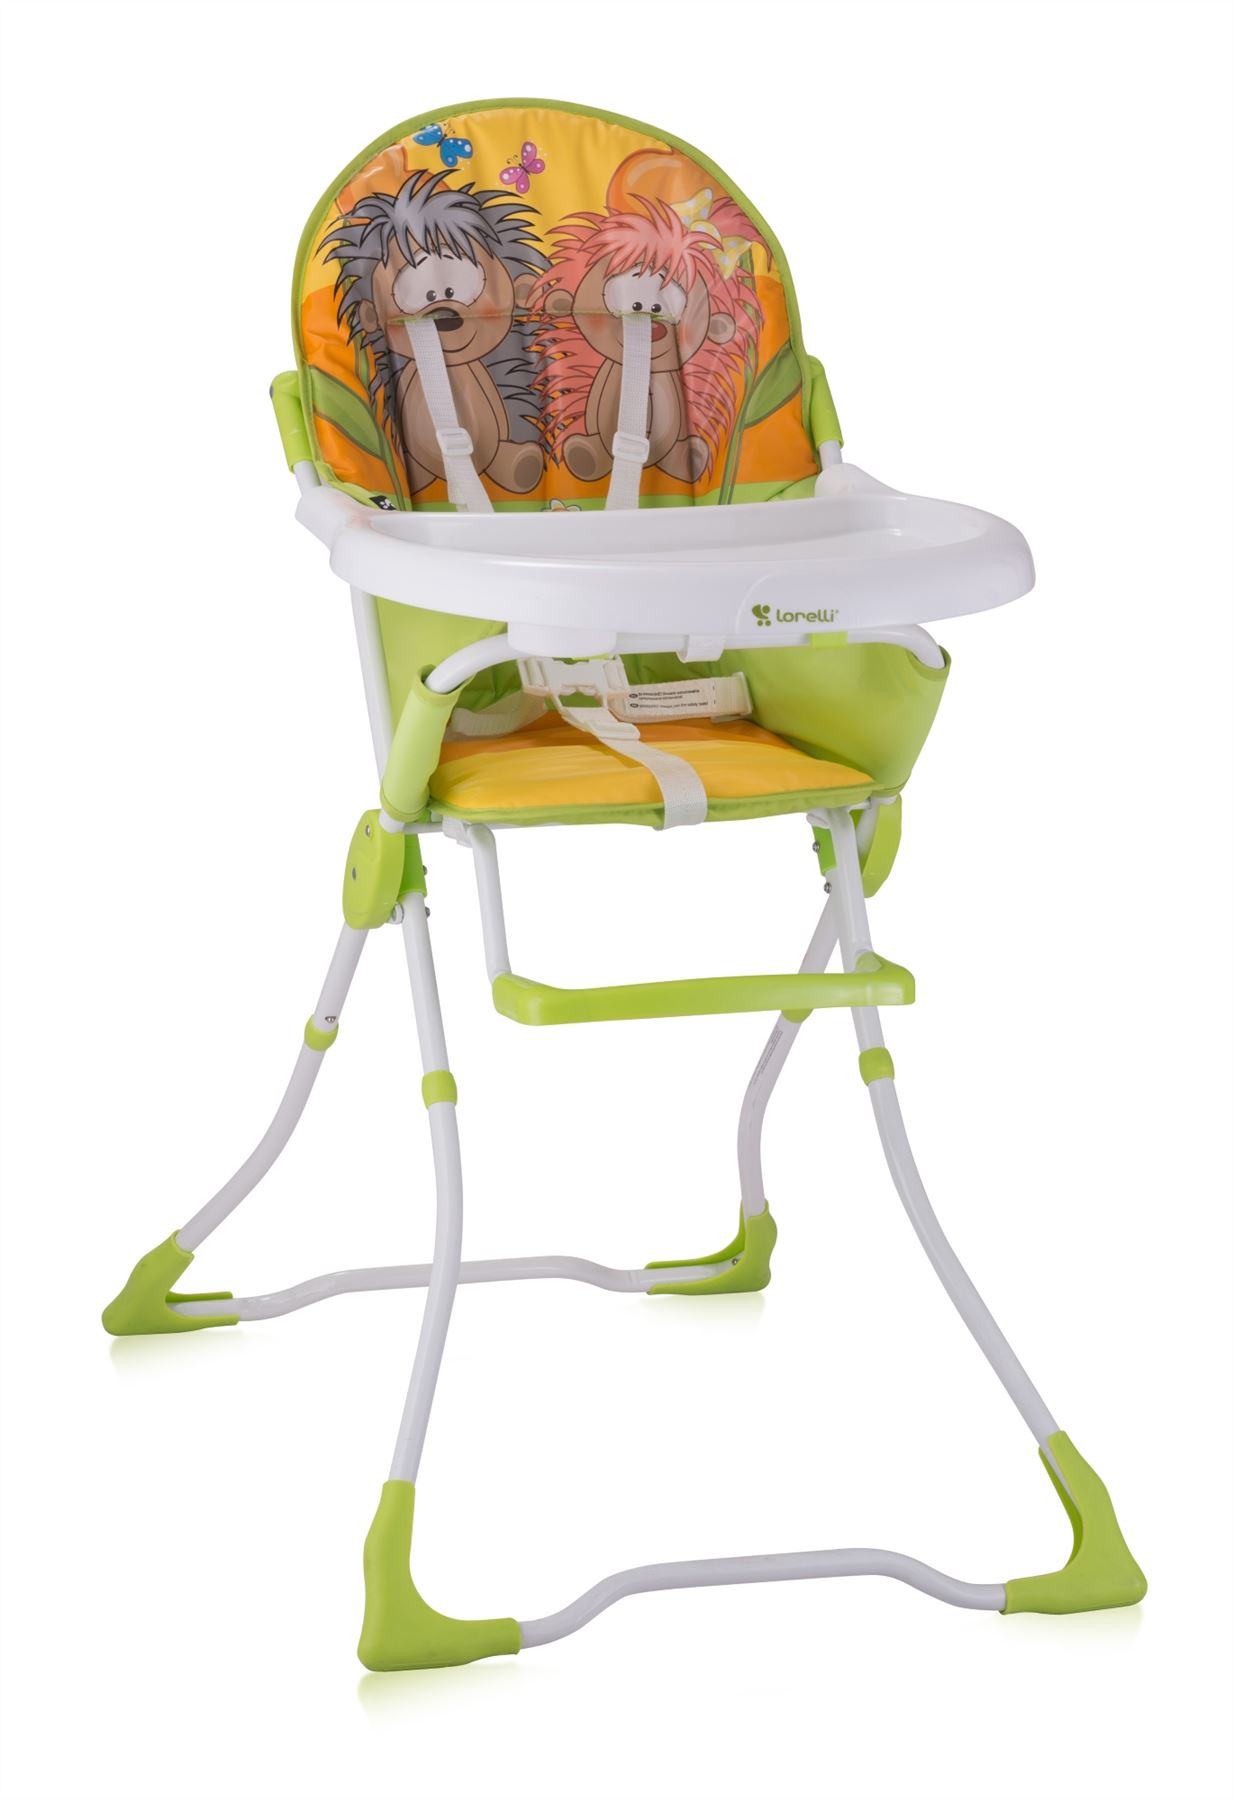 Ebebek gear travel high chair portable high chair 0 review - New Baby High Seat Chair Booster With Tray